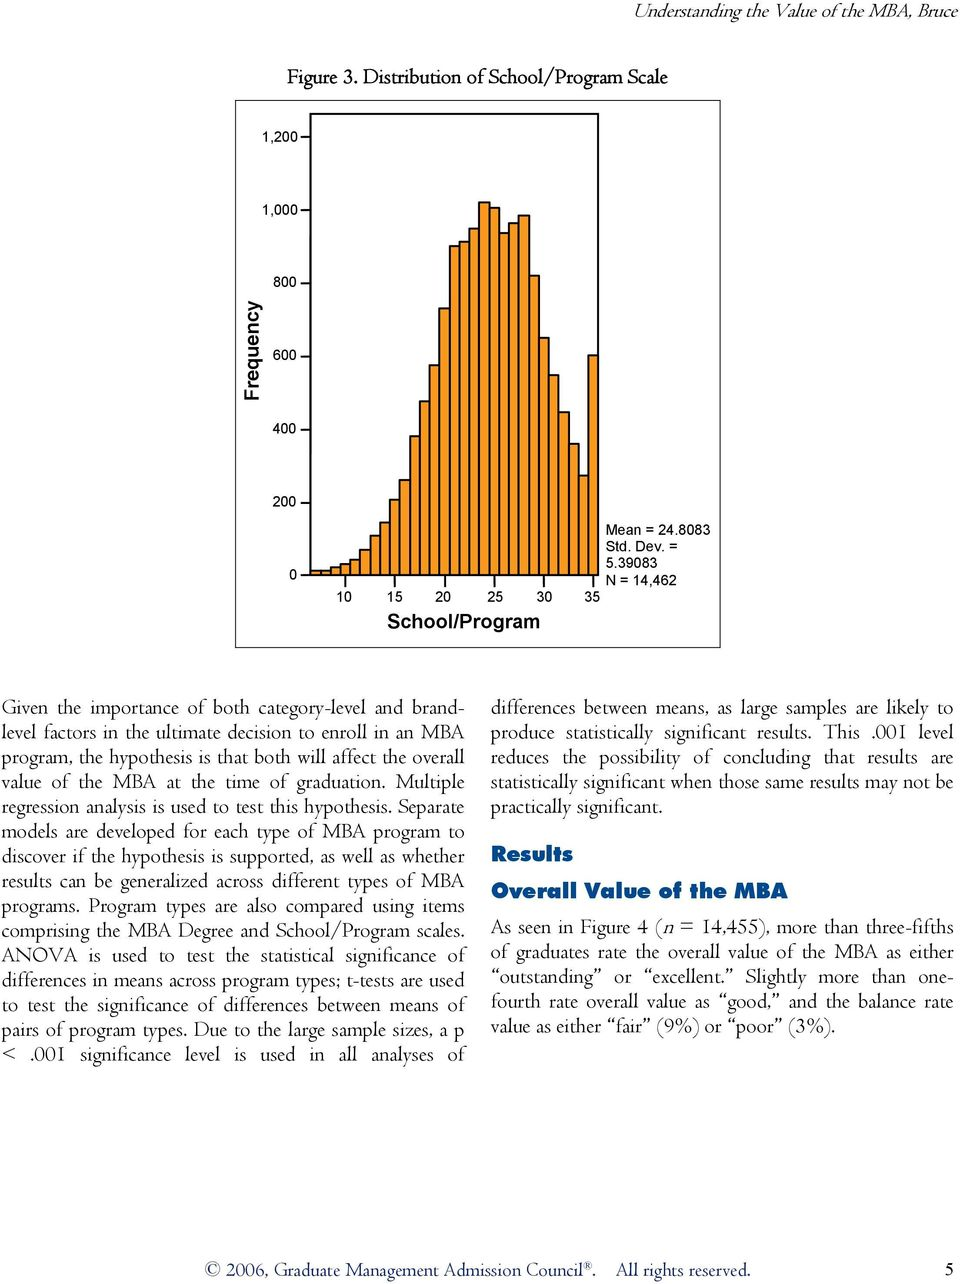 the MBA at the time of graduation. Multiple regression analysis is used to test this hypothesis.